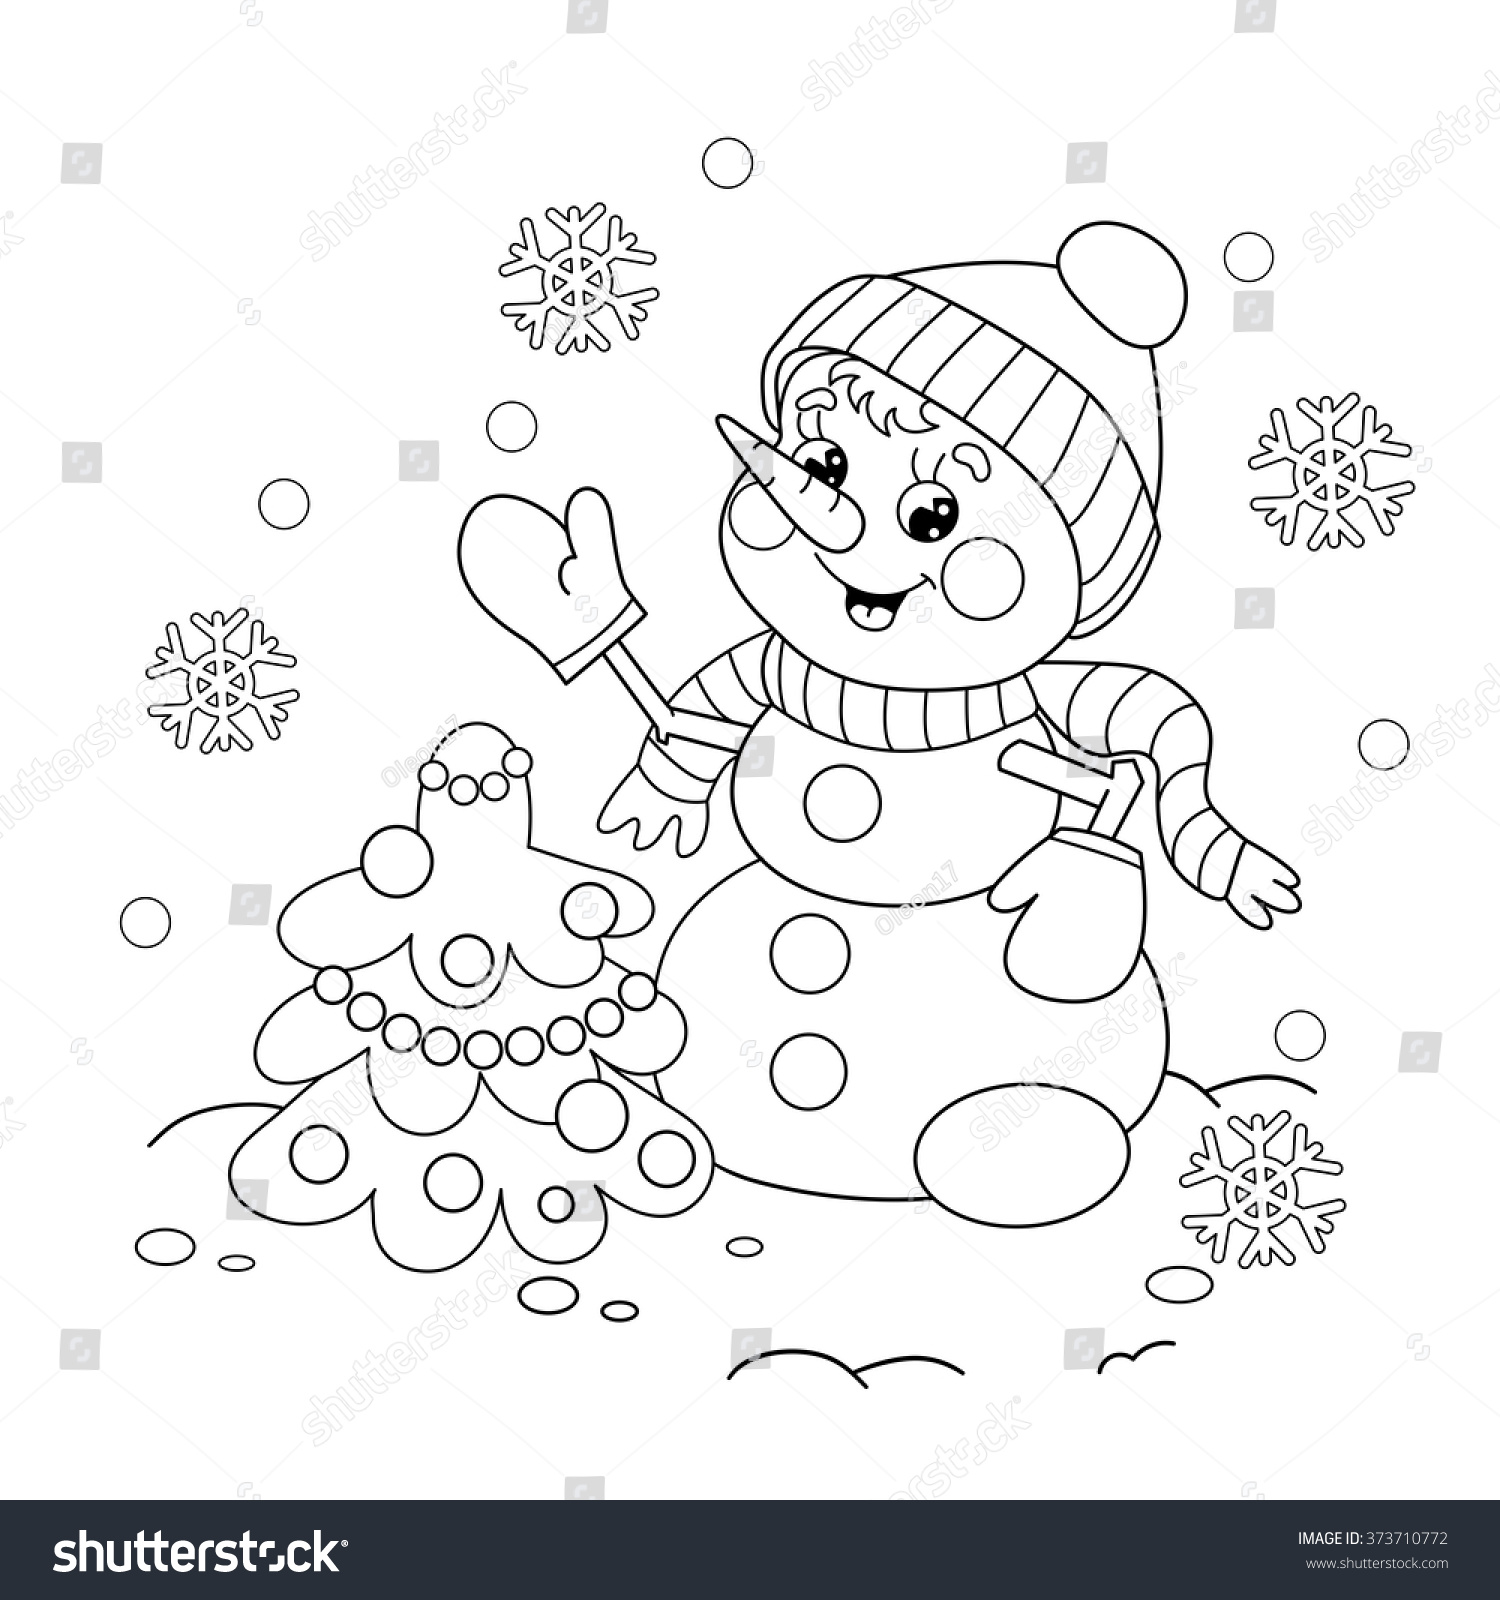 Coloring Christmas Card With Snowman Stock Vector: Coloring Page Outline Cartoon Snowman Christmas Stock